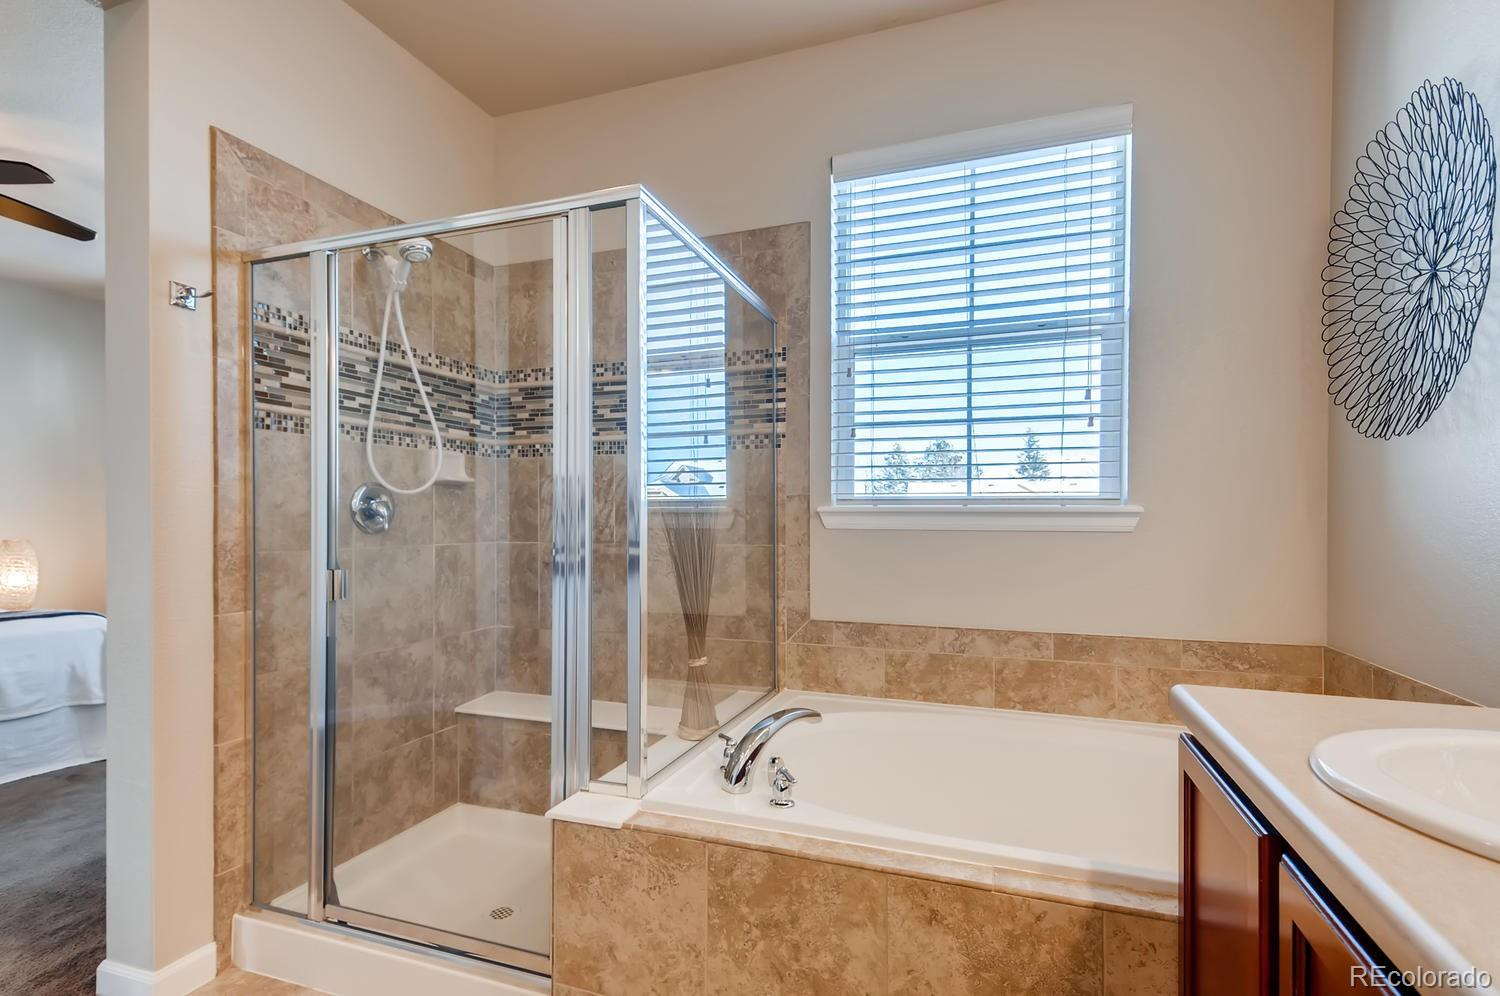 MLS# 7221066 - 21 - 6288 Orchard Court #B, Arvada, CO 80403